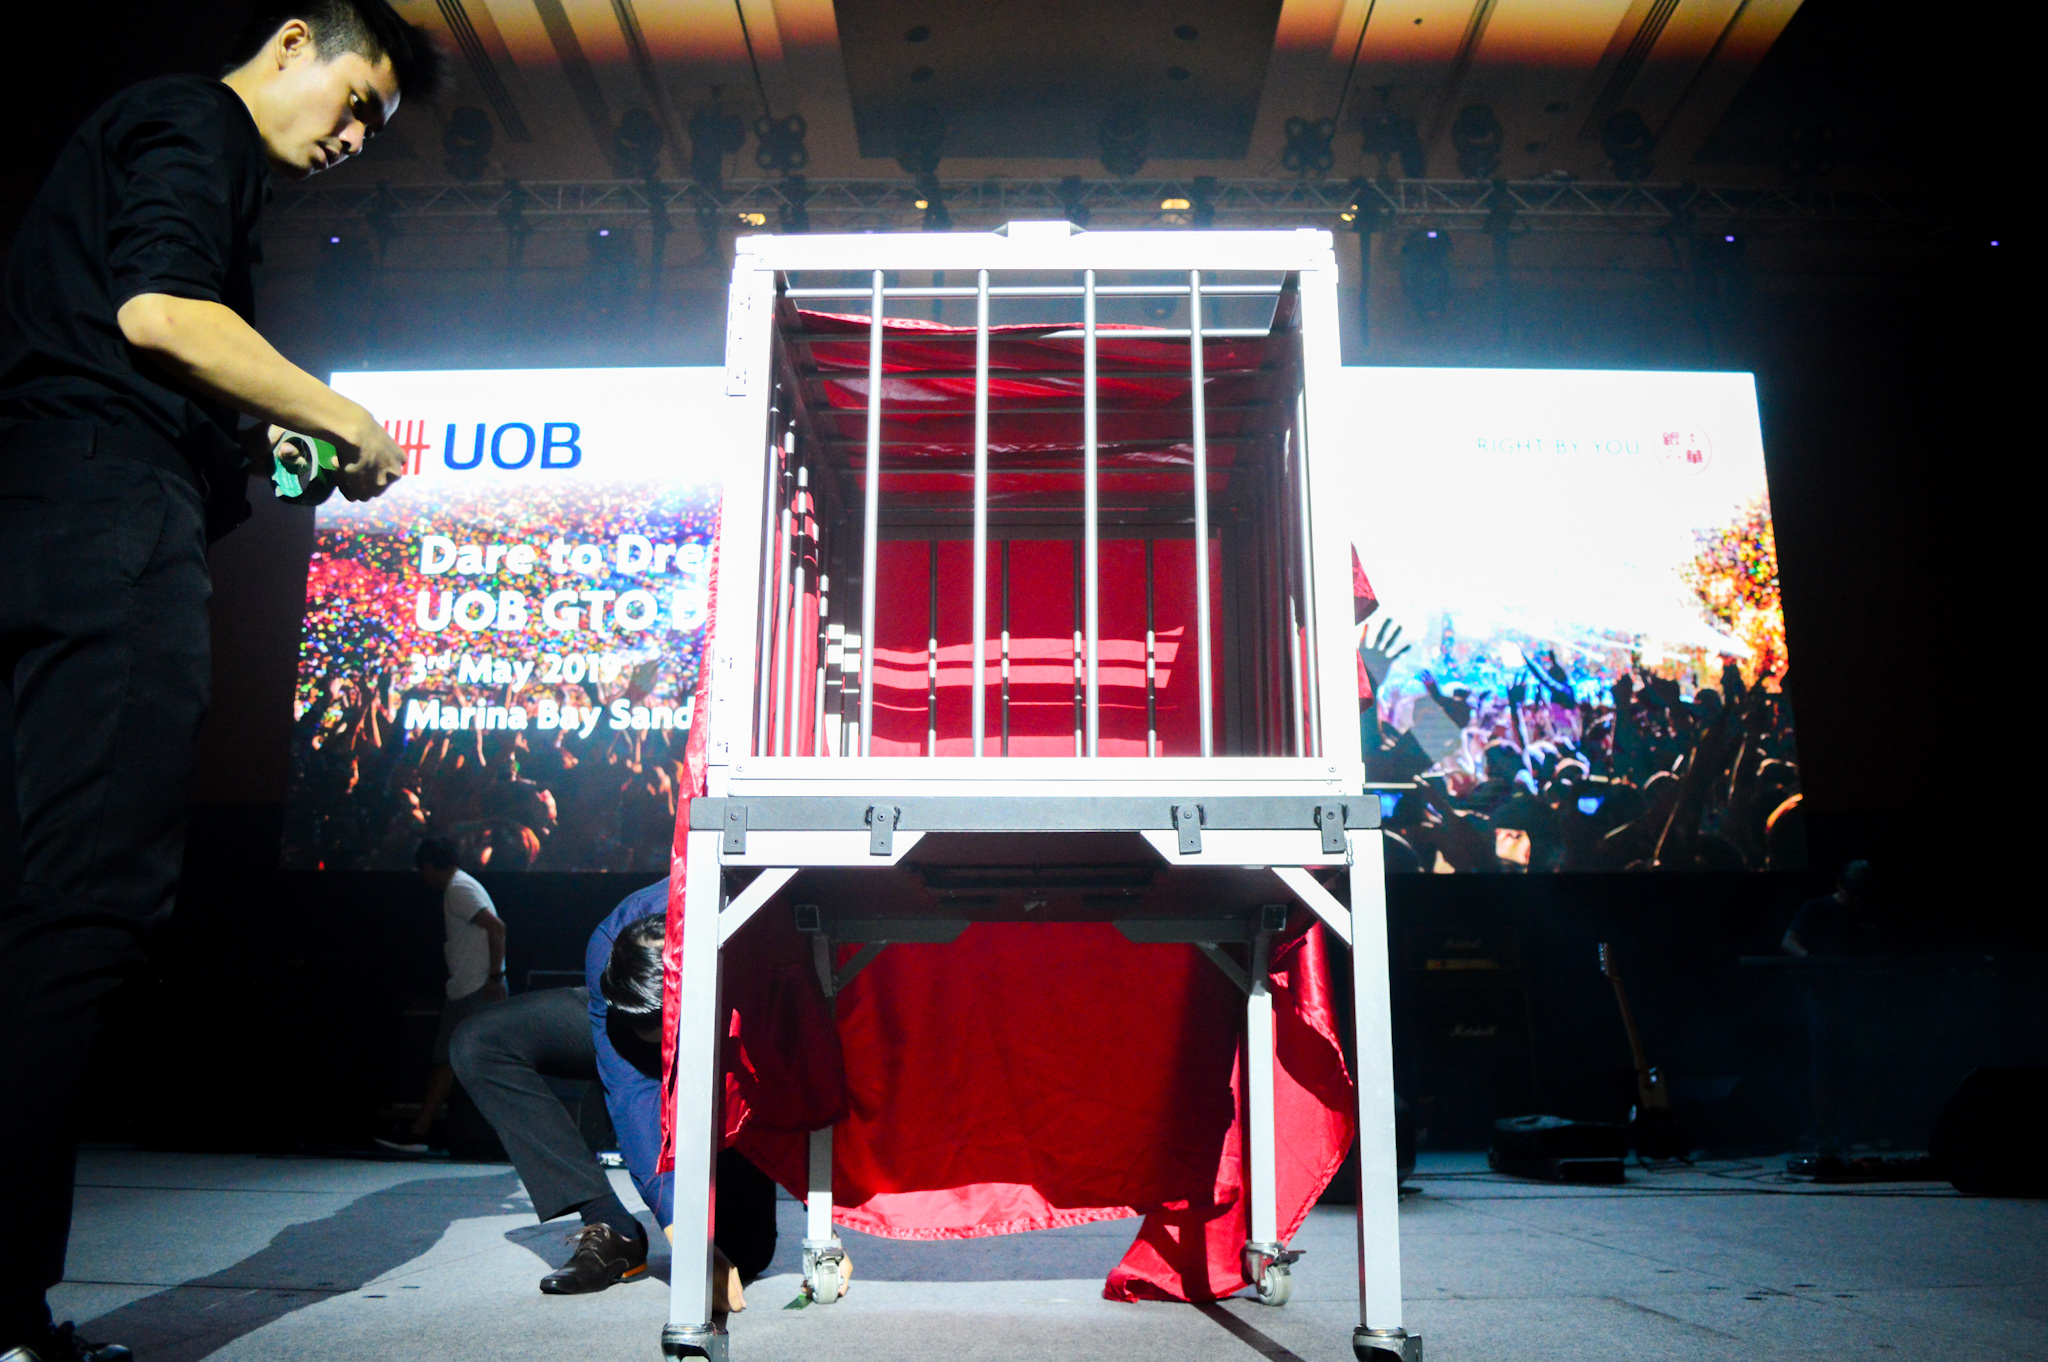 Magic Illusion Show Corporate UOB